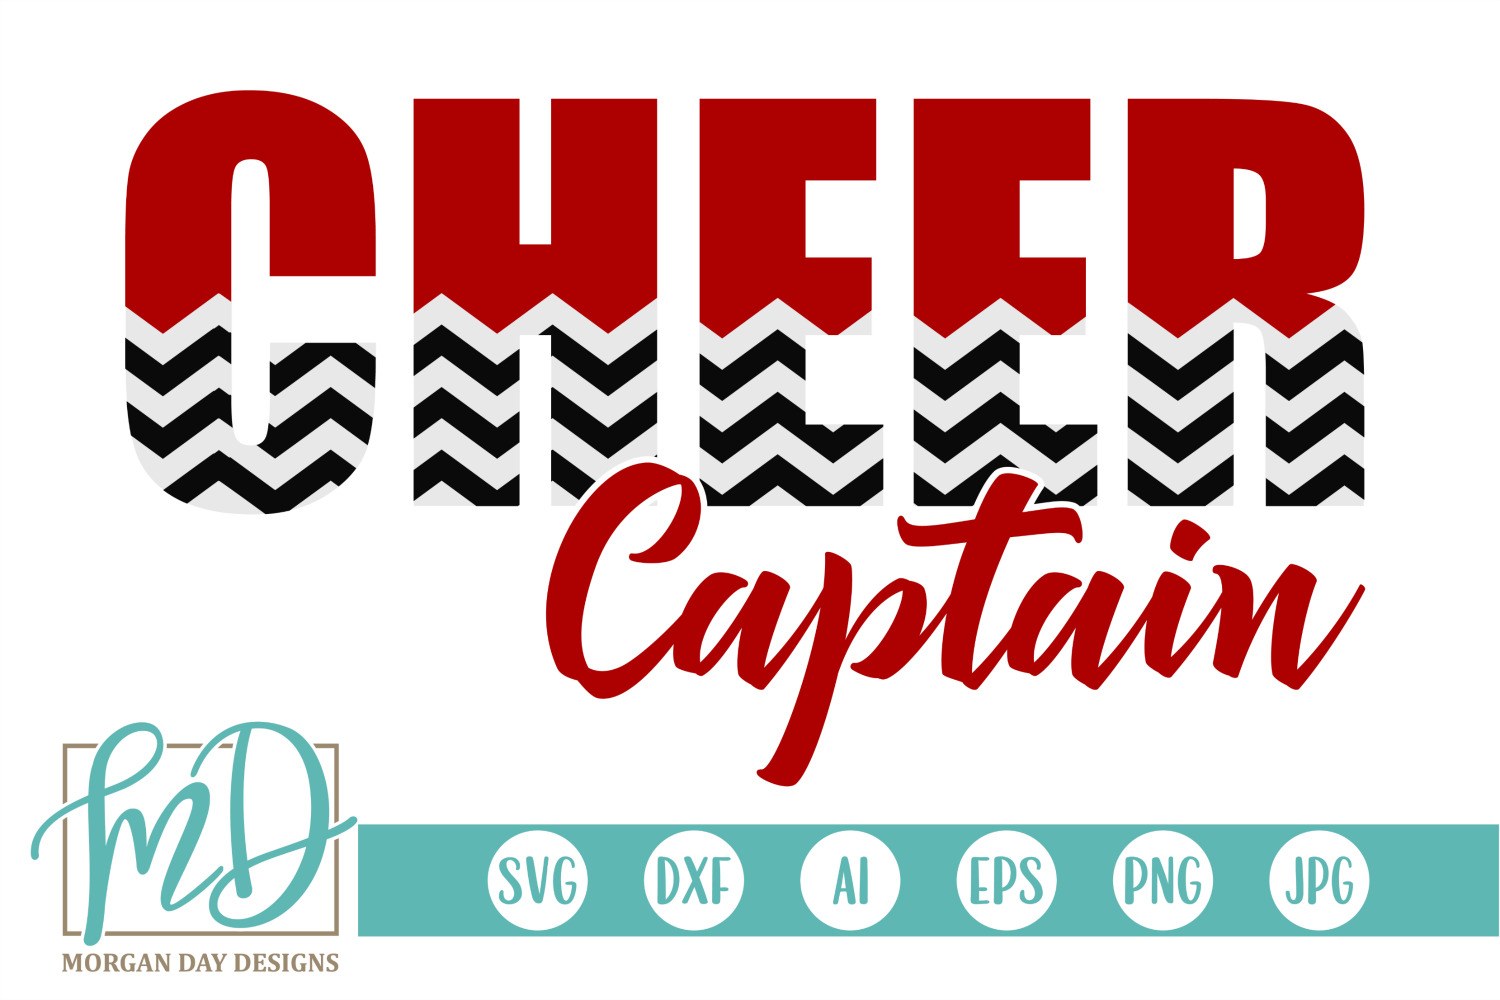 Cheer Captain - Cheerleader SVG, DXF, AI, EPS, PNG, JPEG example image 1